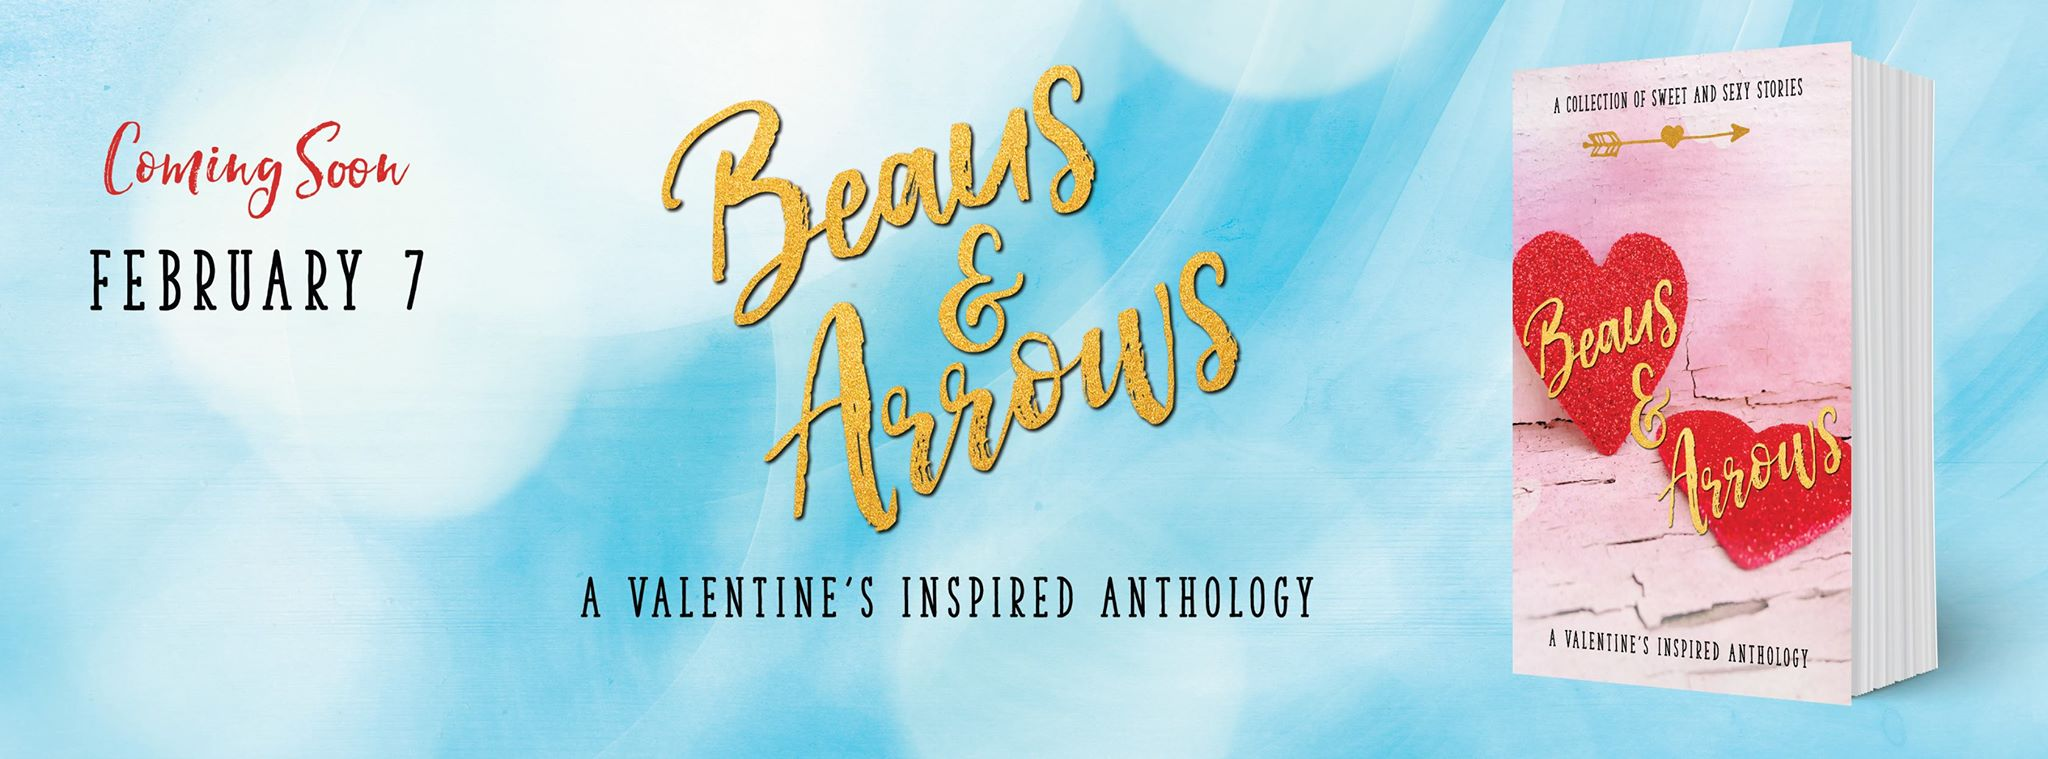 beaus-arrows-banner